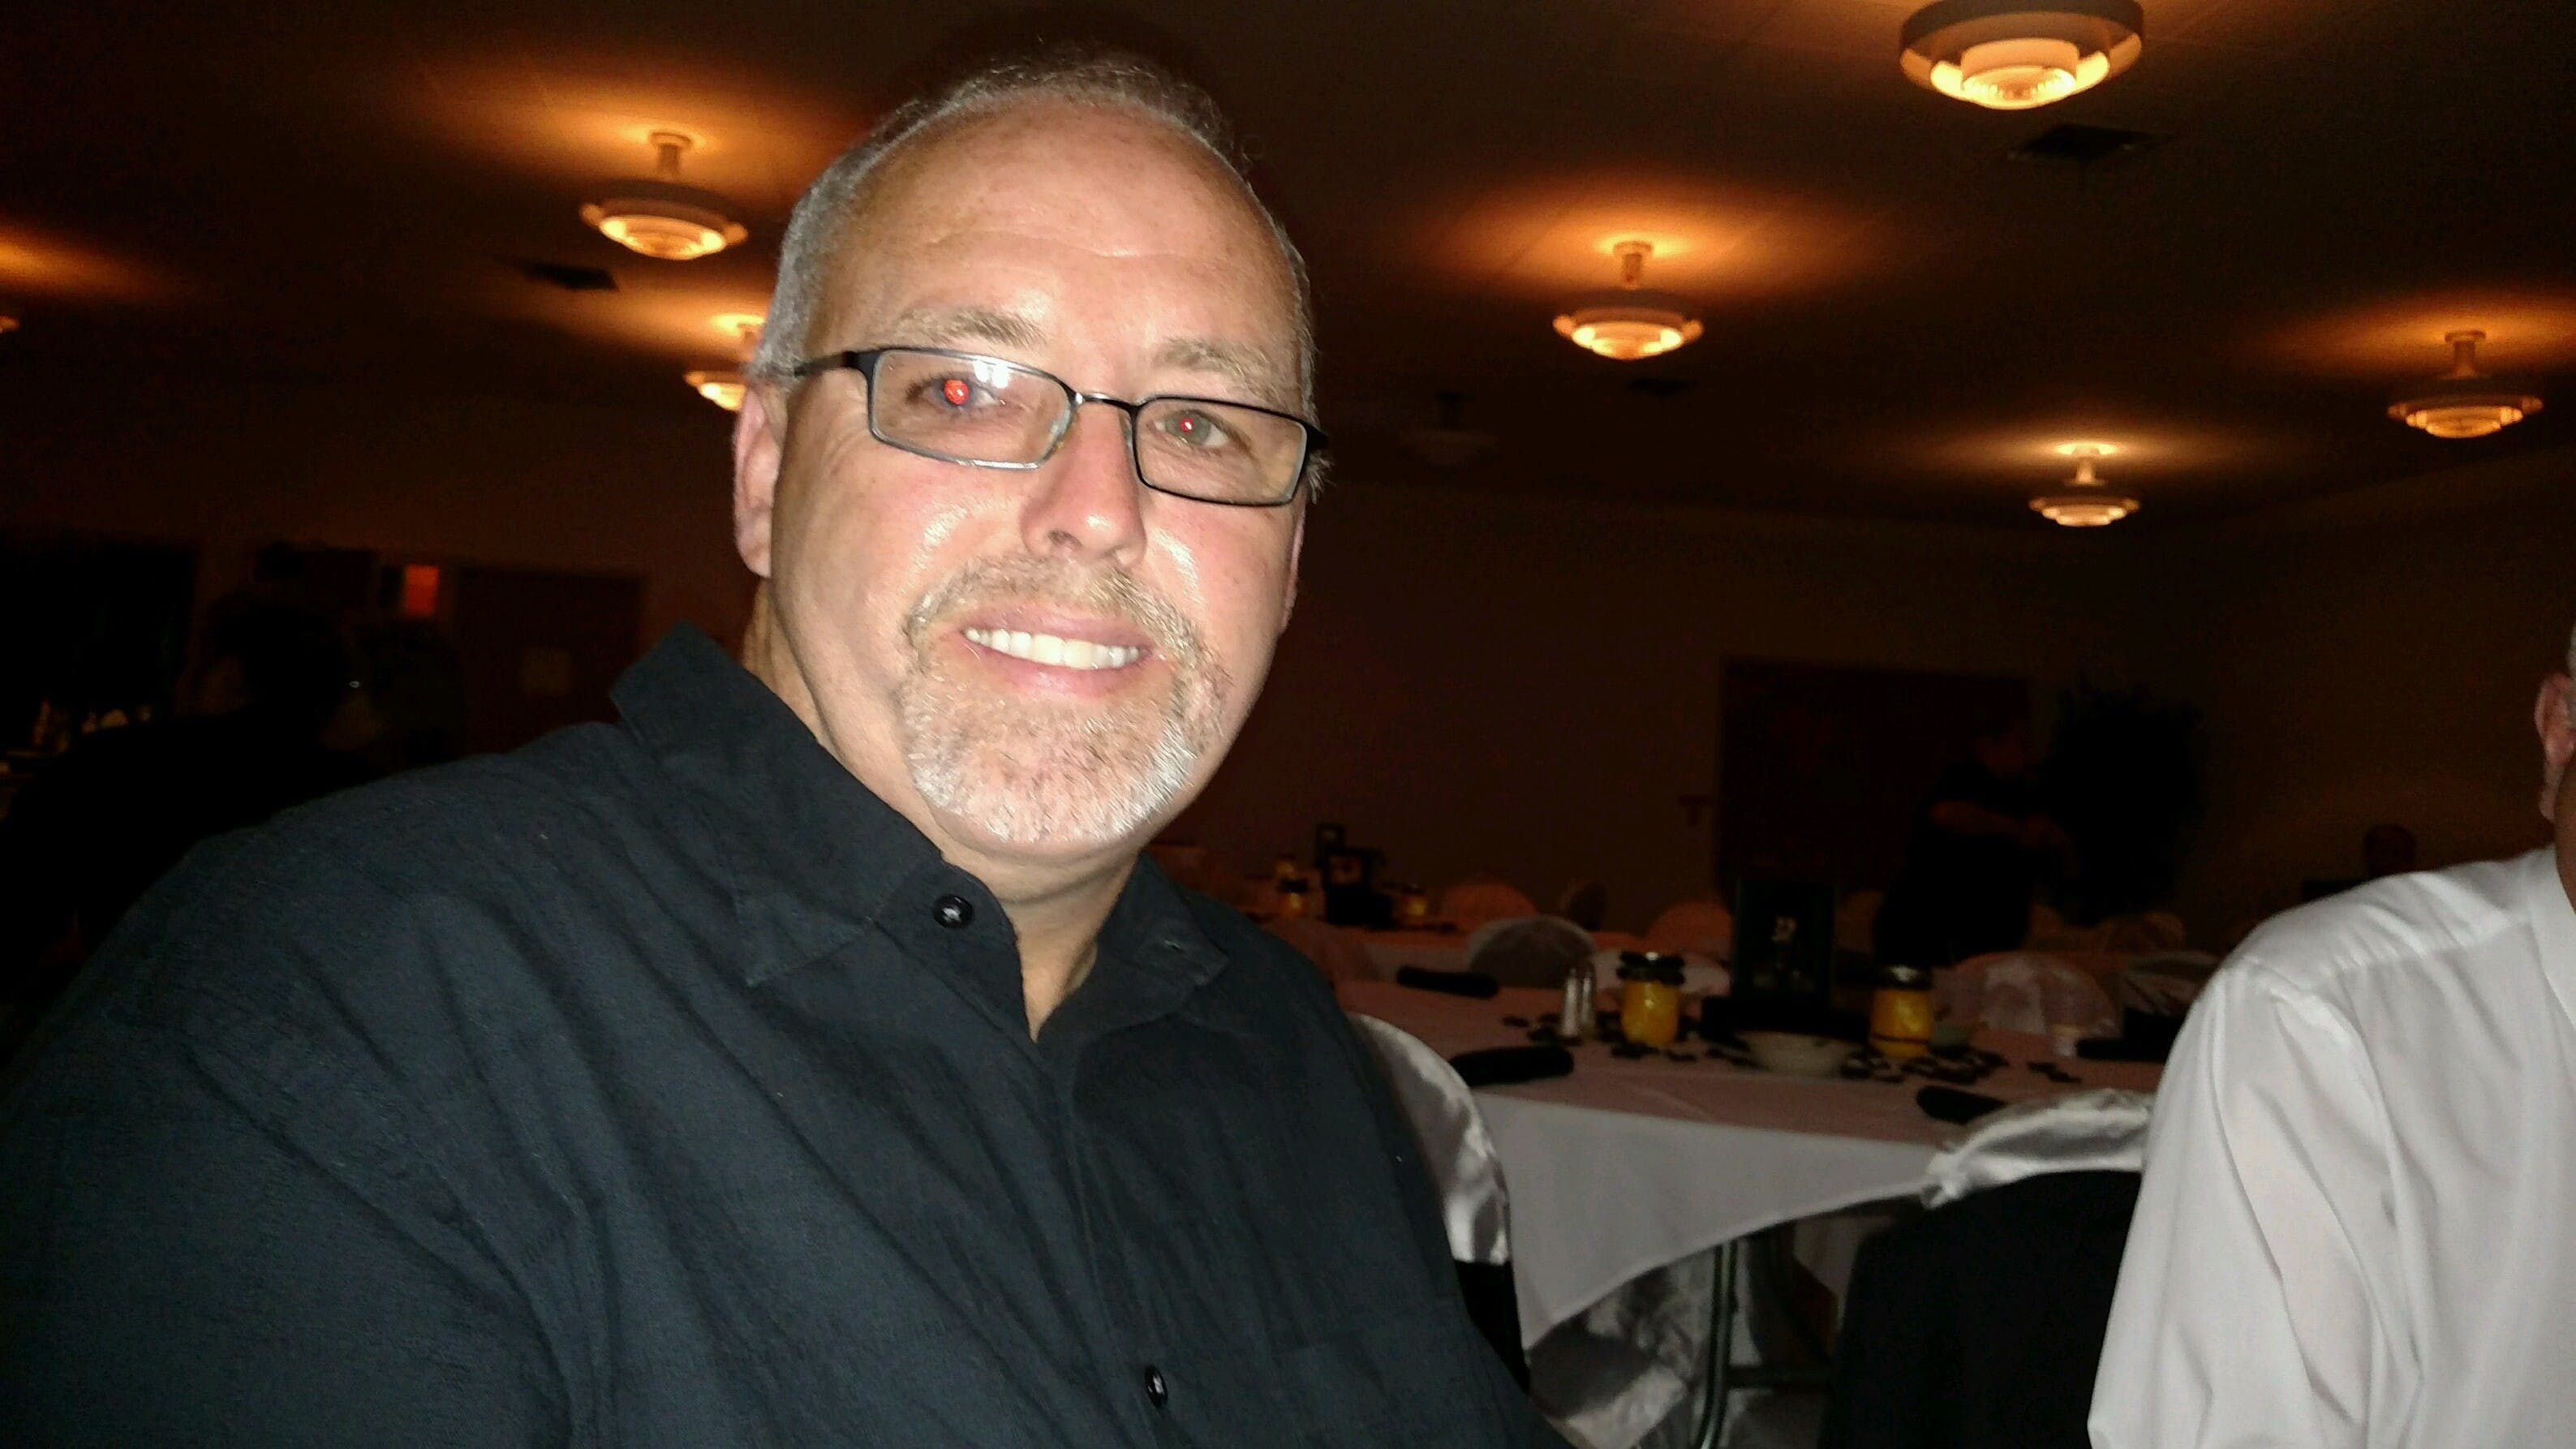 Dave Hufford is looking for his biological father. His biological mother was from Port Hood, N.S. and he was born in Colchester County.